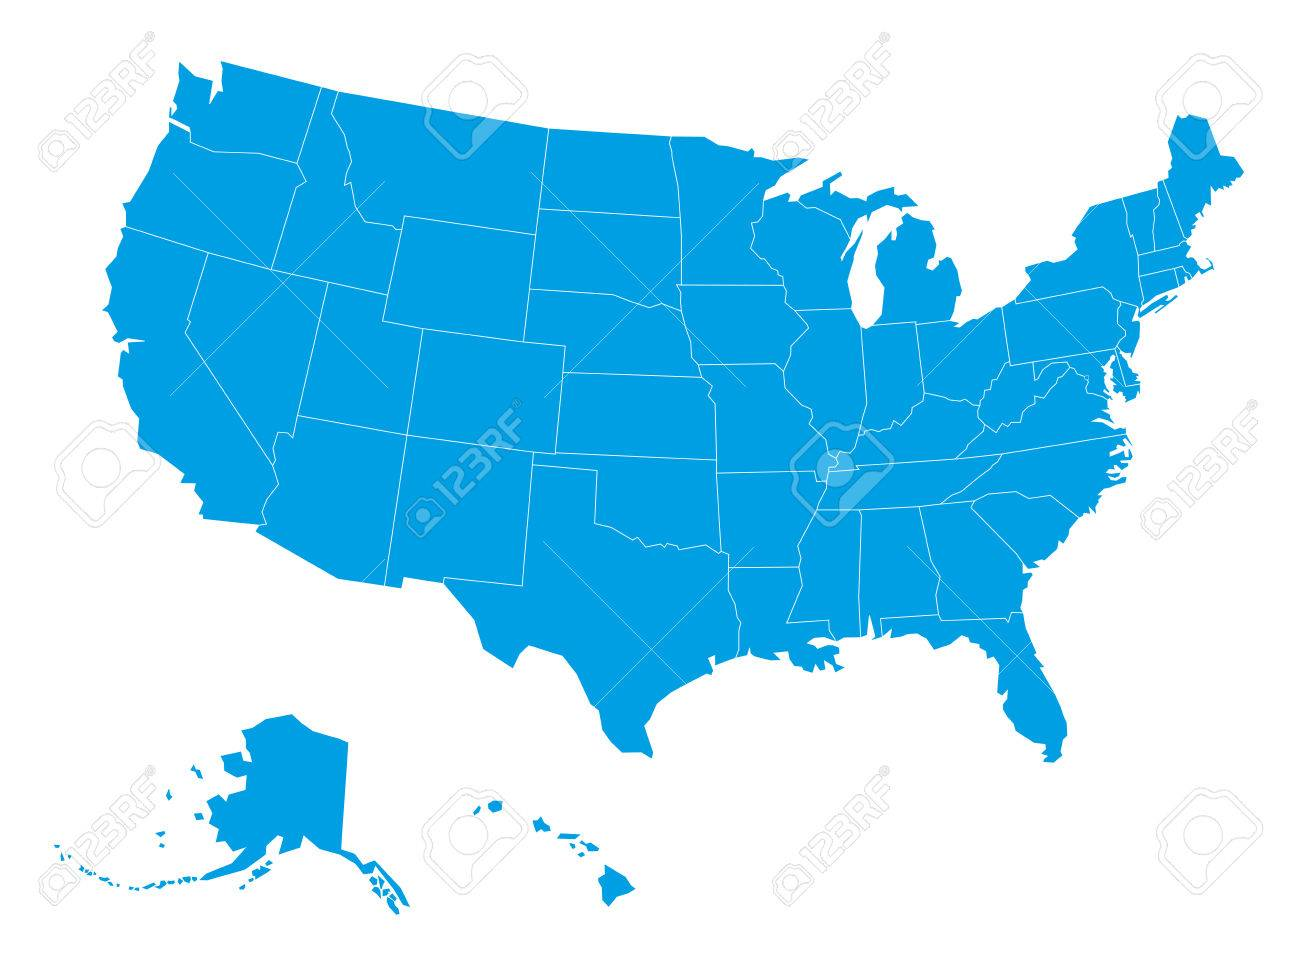 blank map of united states of america divided into states